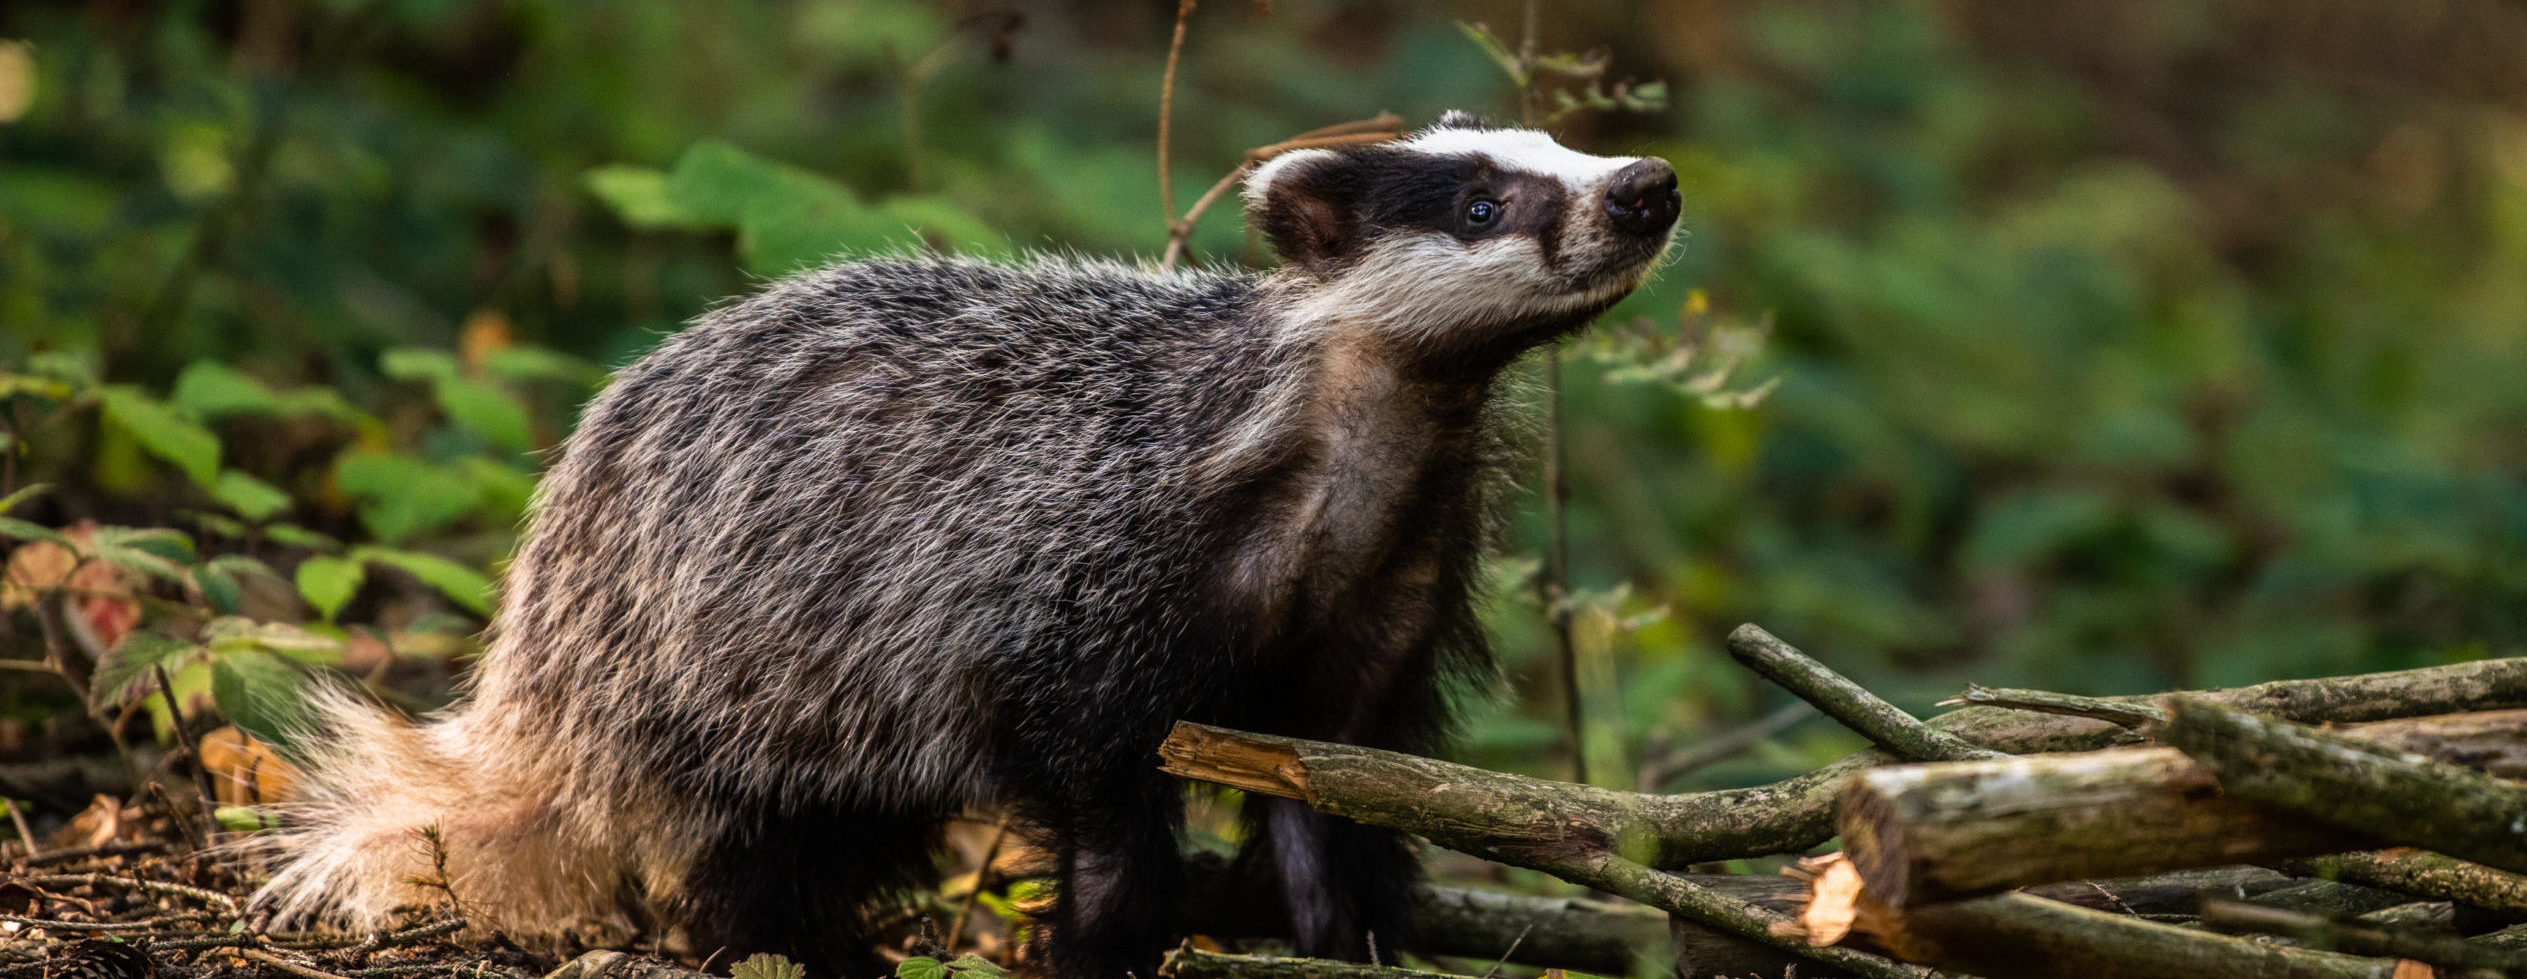 Badger in the woods - Bovine TB